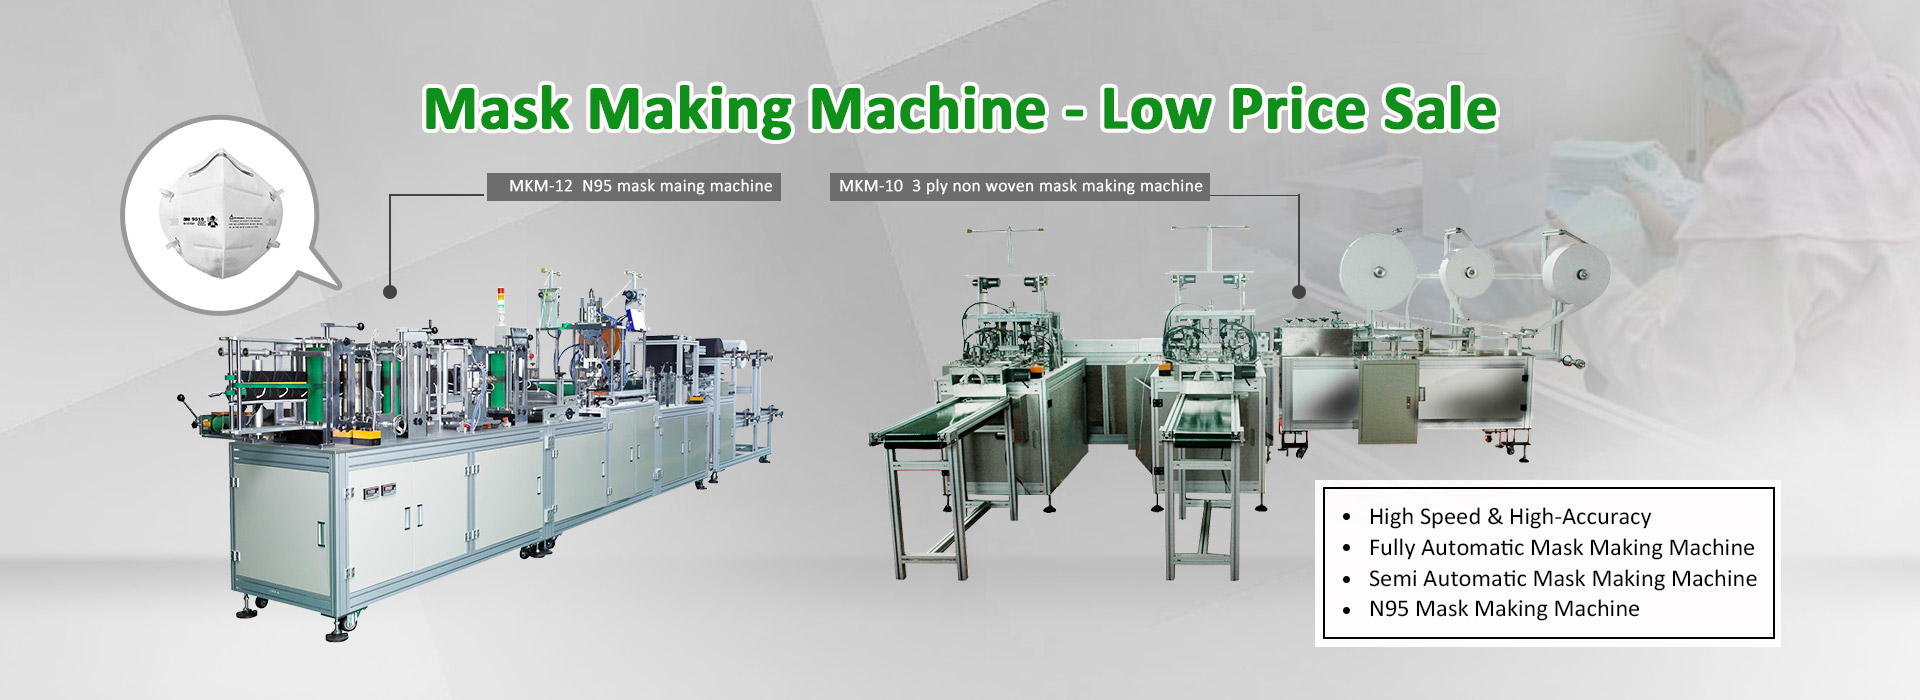 Mask Making Machine Manufacturers & Suppliers